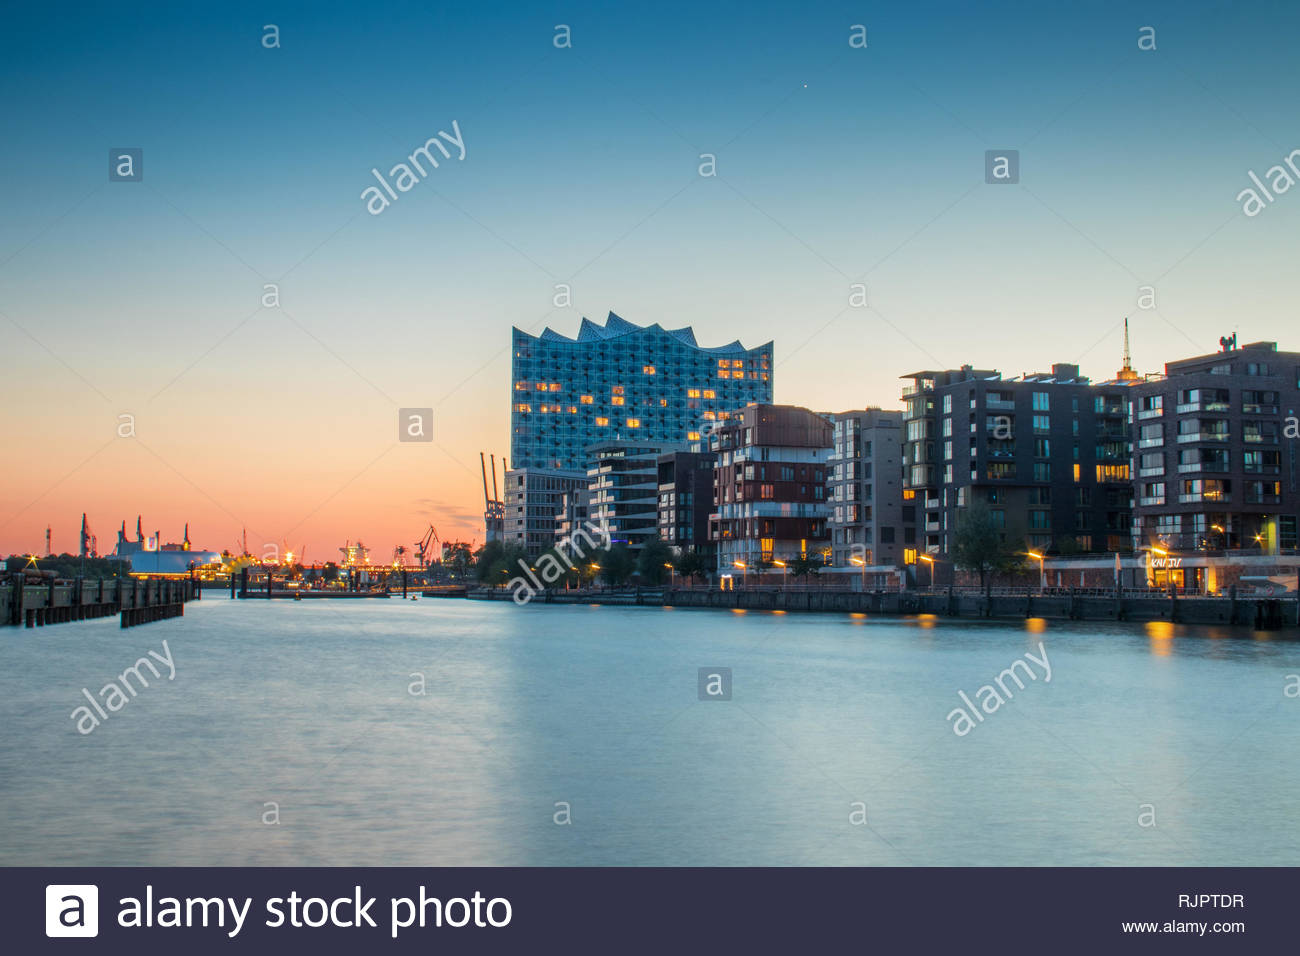 Harbour, Hafen City, Hamburg, Germany - Stock Image